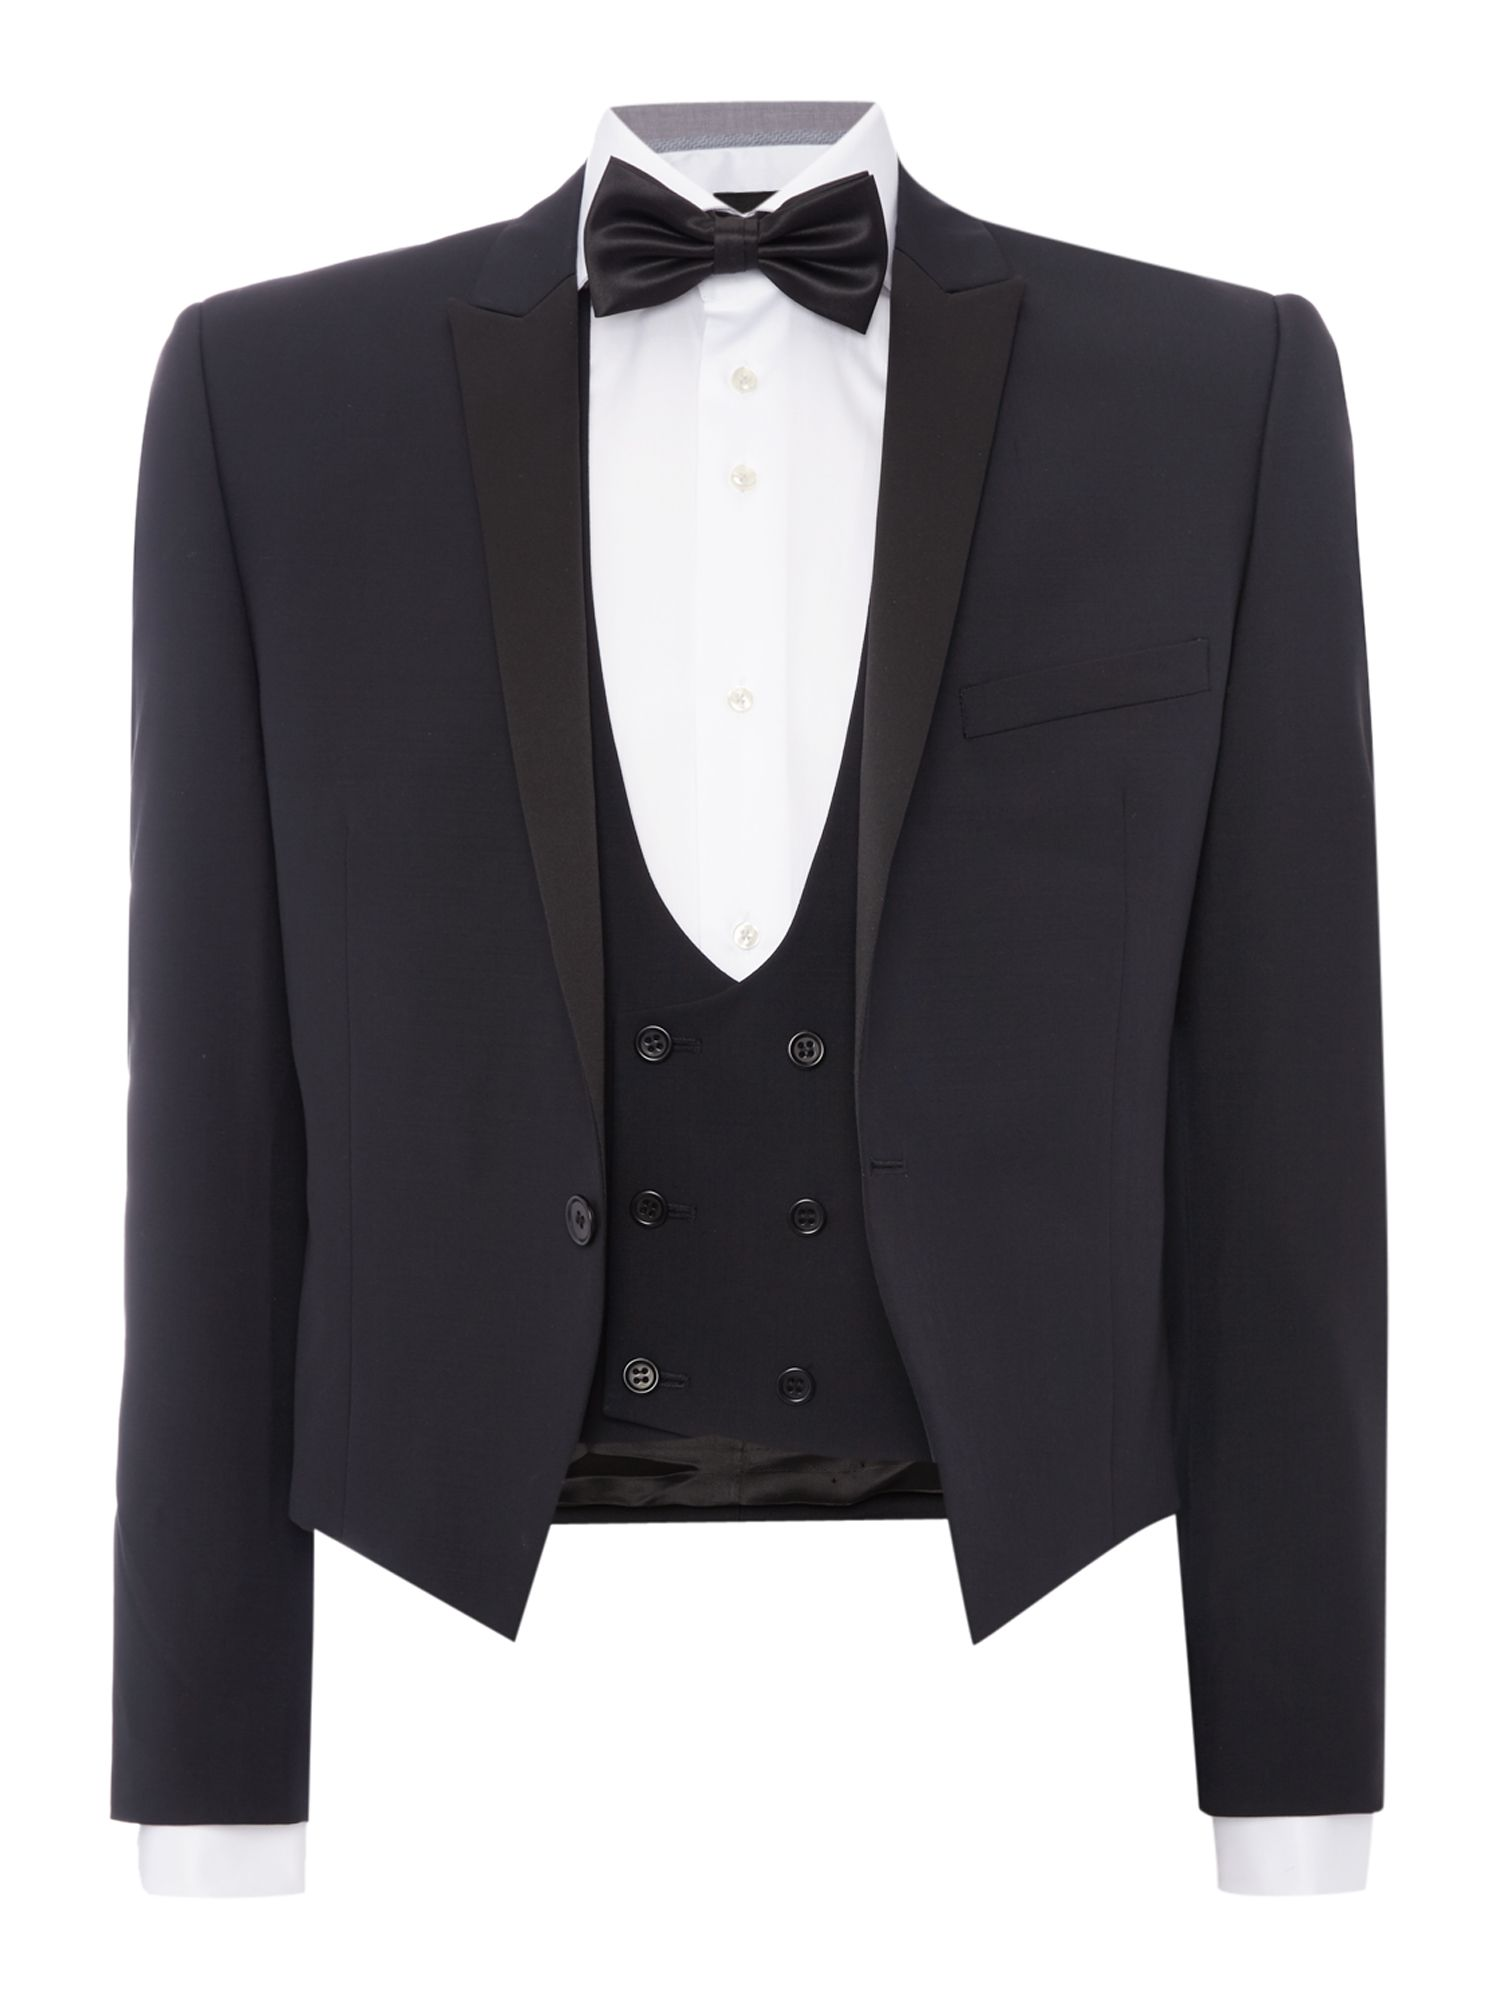 New Vintage Tuxedos, Tailcoats, Morning Suits, Dinner Jackets Mens Paul Costelloe Slim Fit Black Three Piece Tuxedo Black £209.30 AT vintagedancer.com